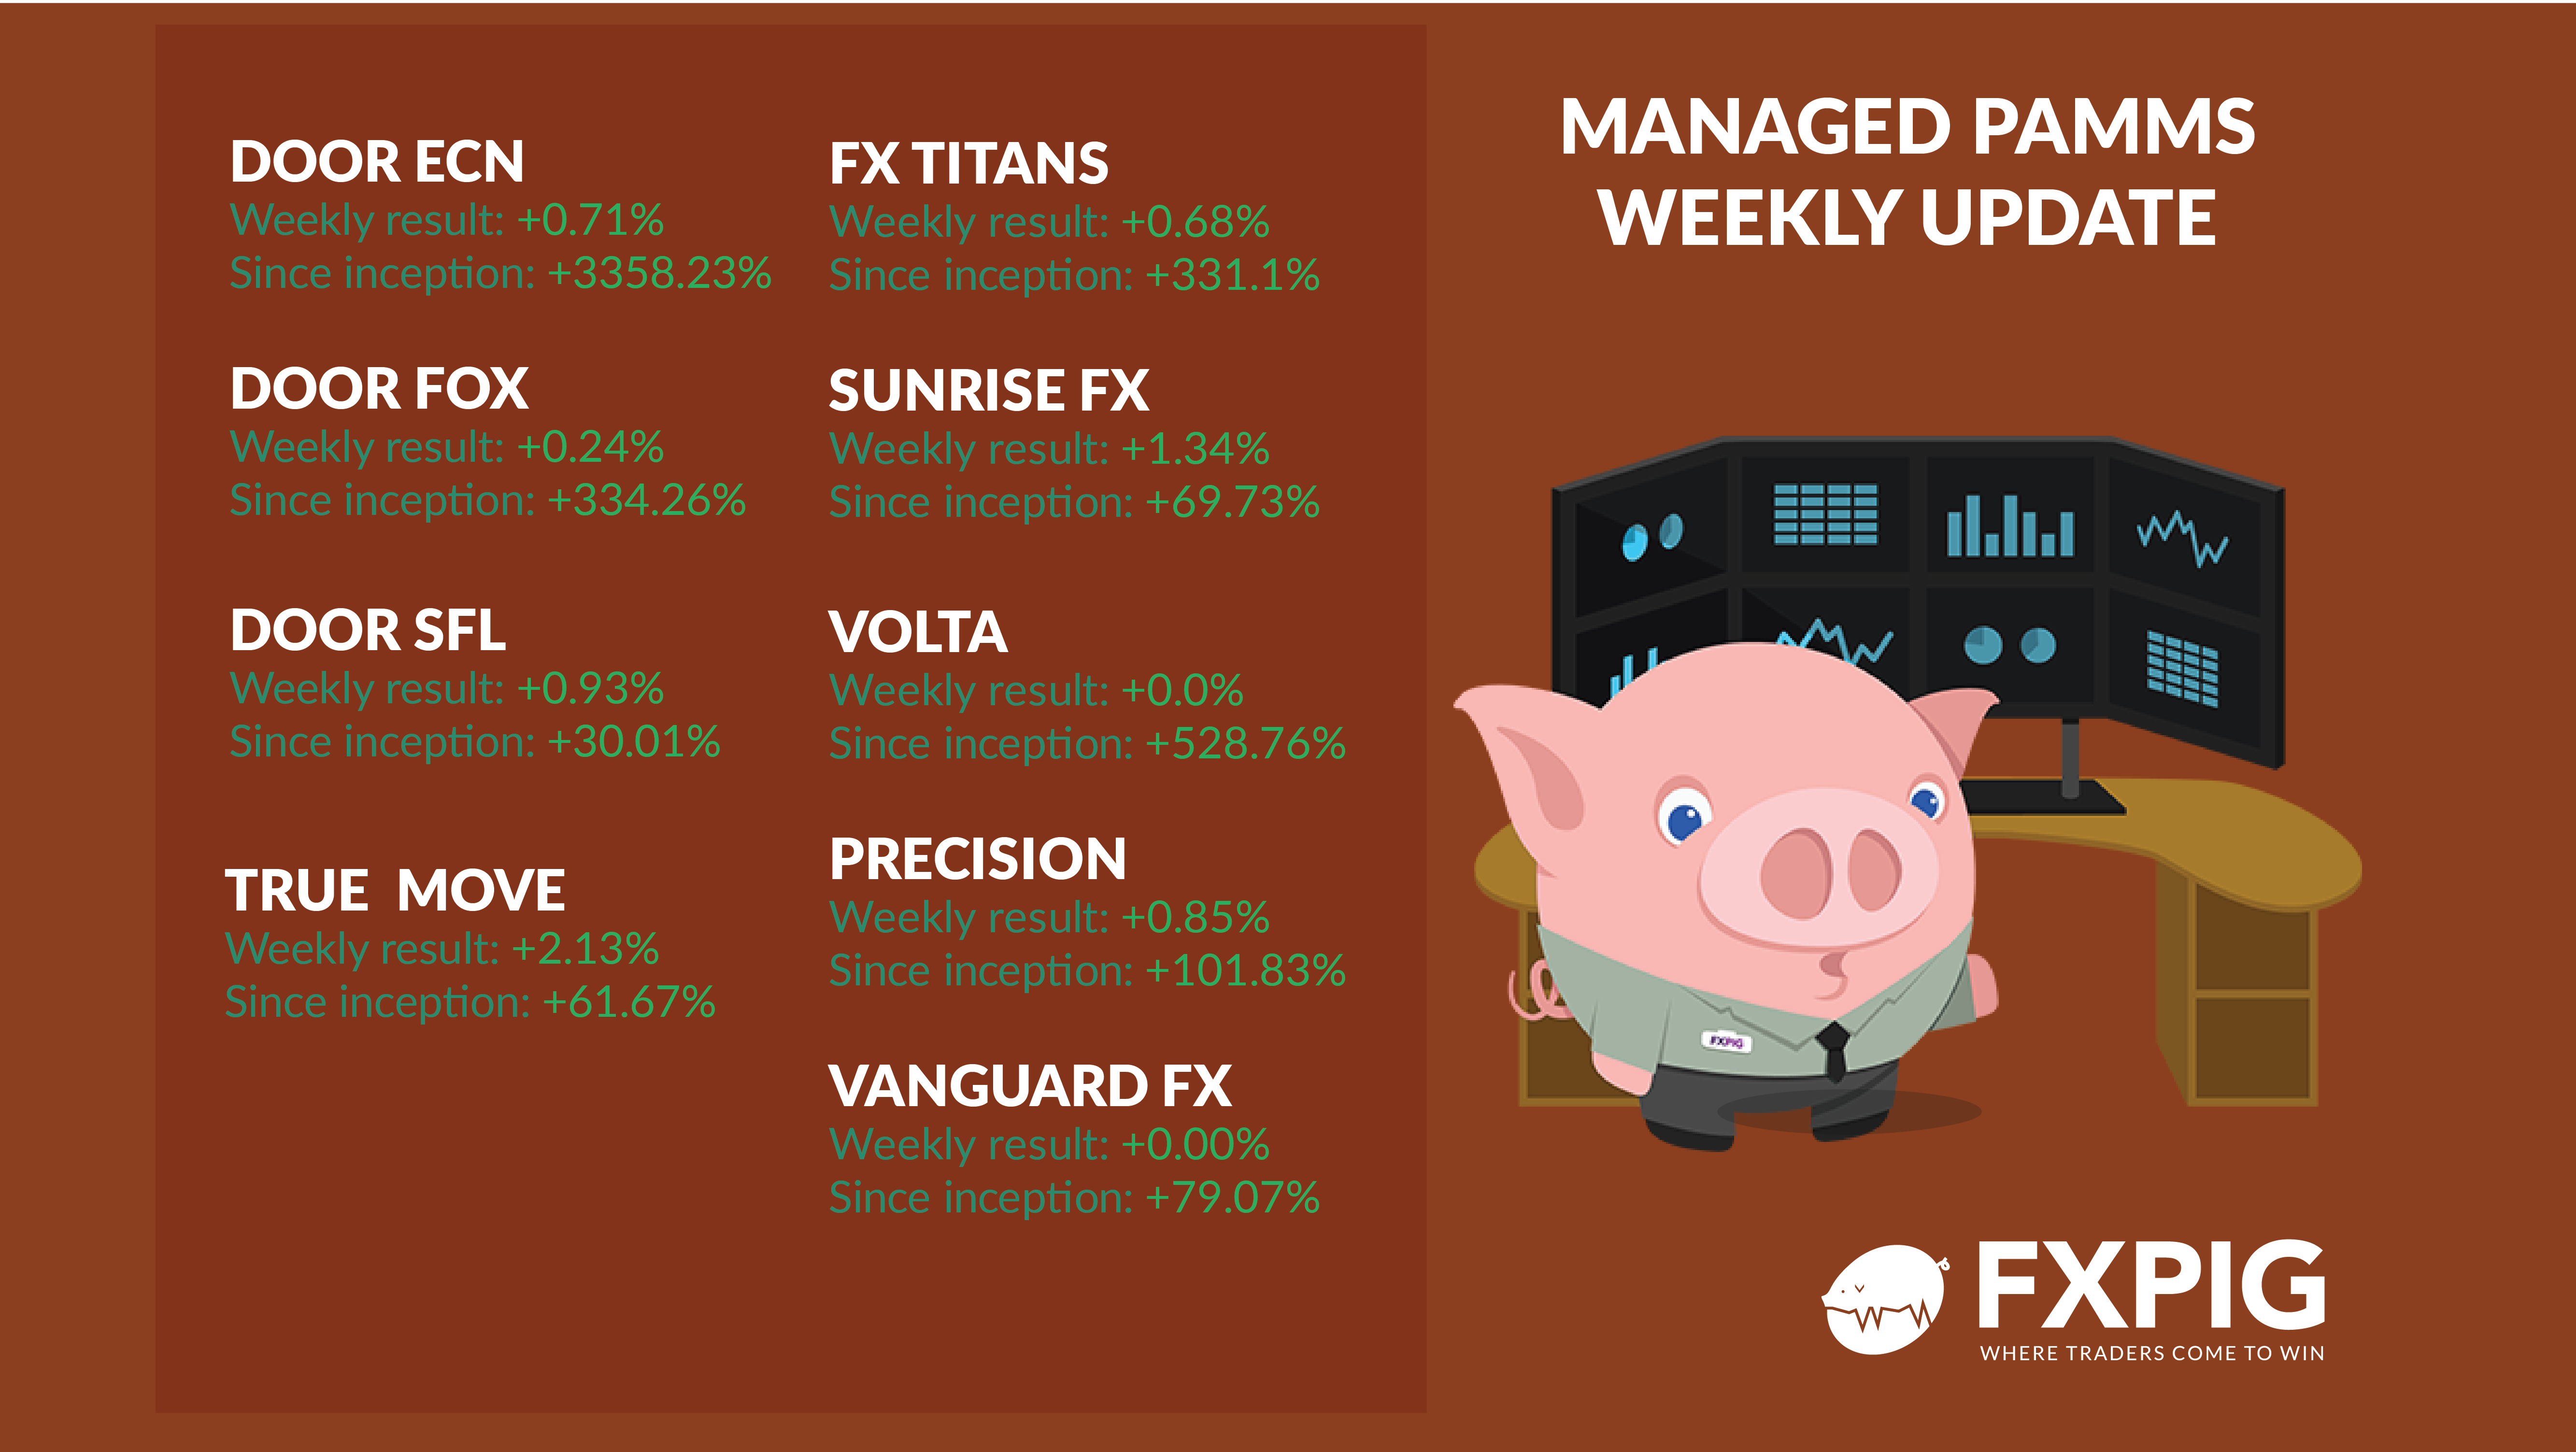 FOREX_Weekly-managed-accounts-2529_FXPIG